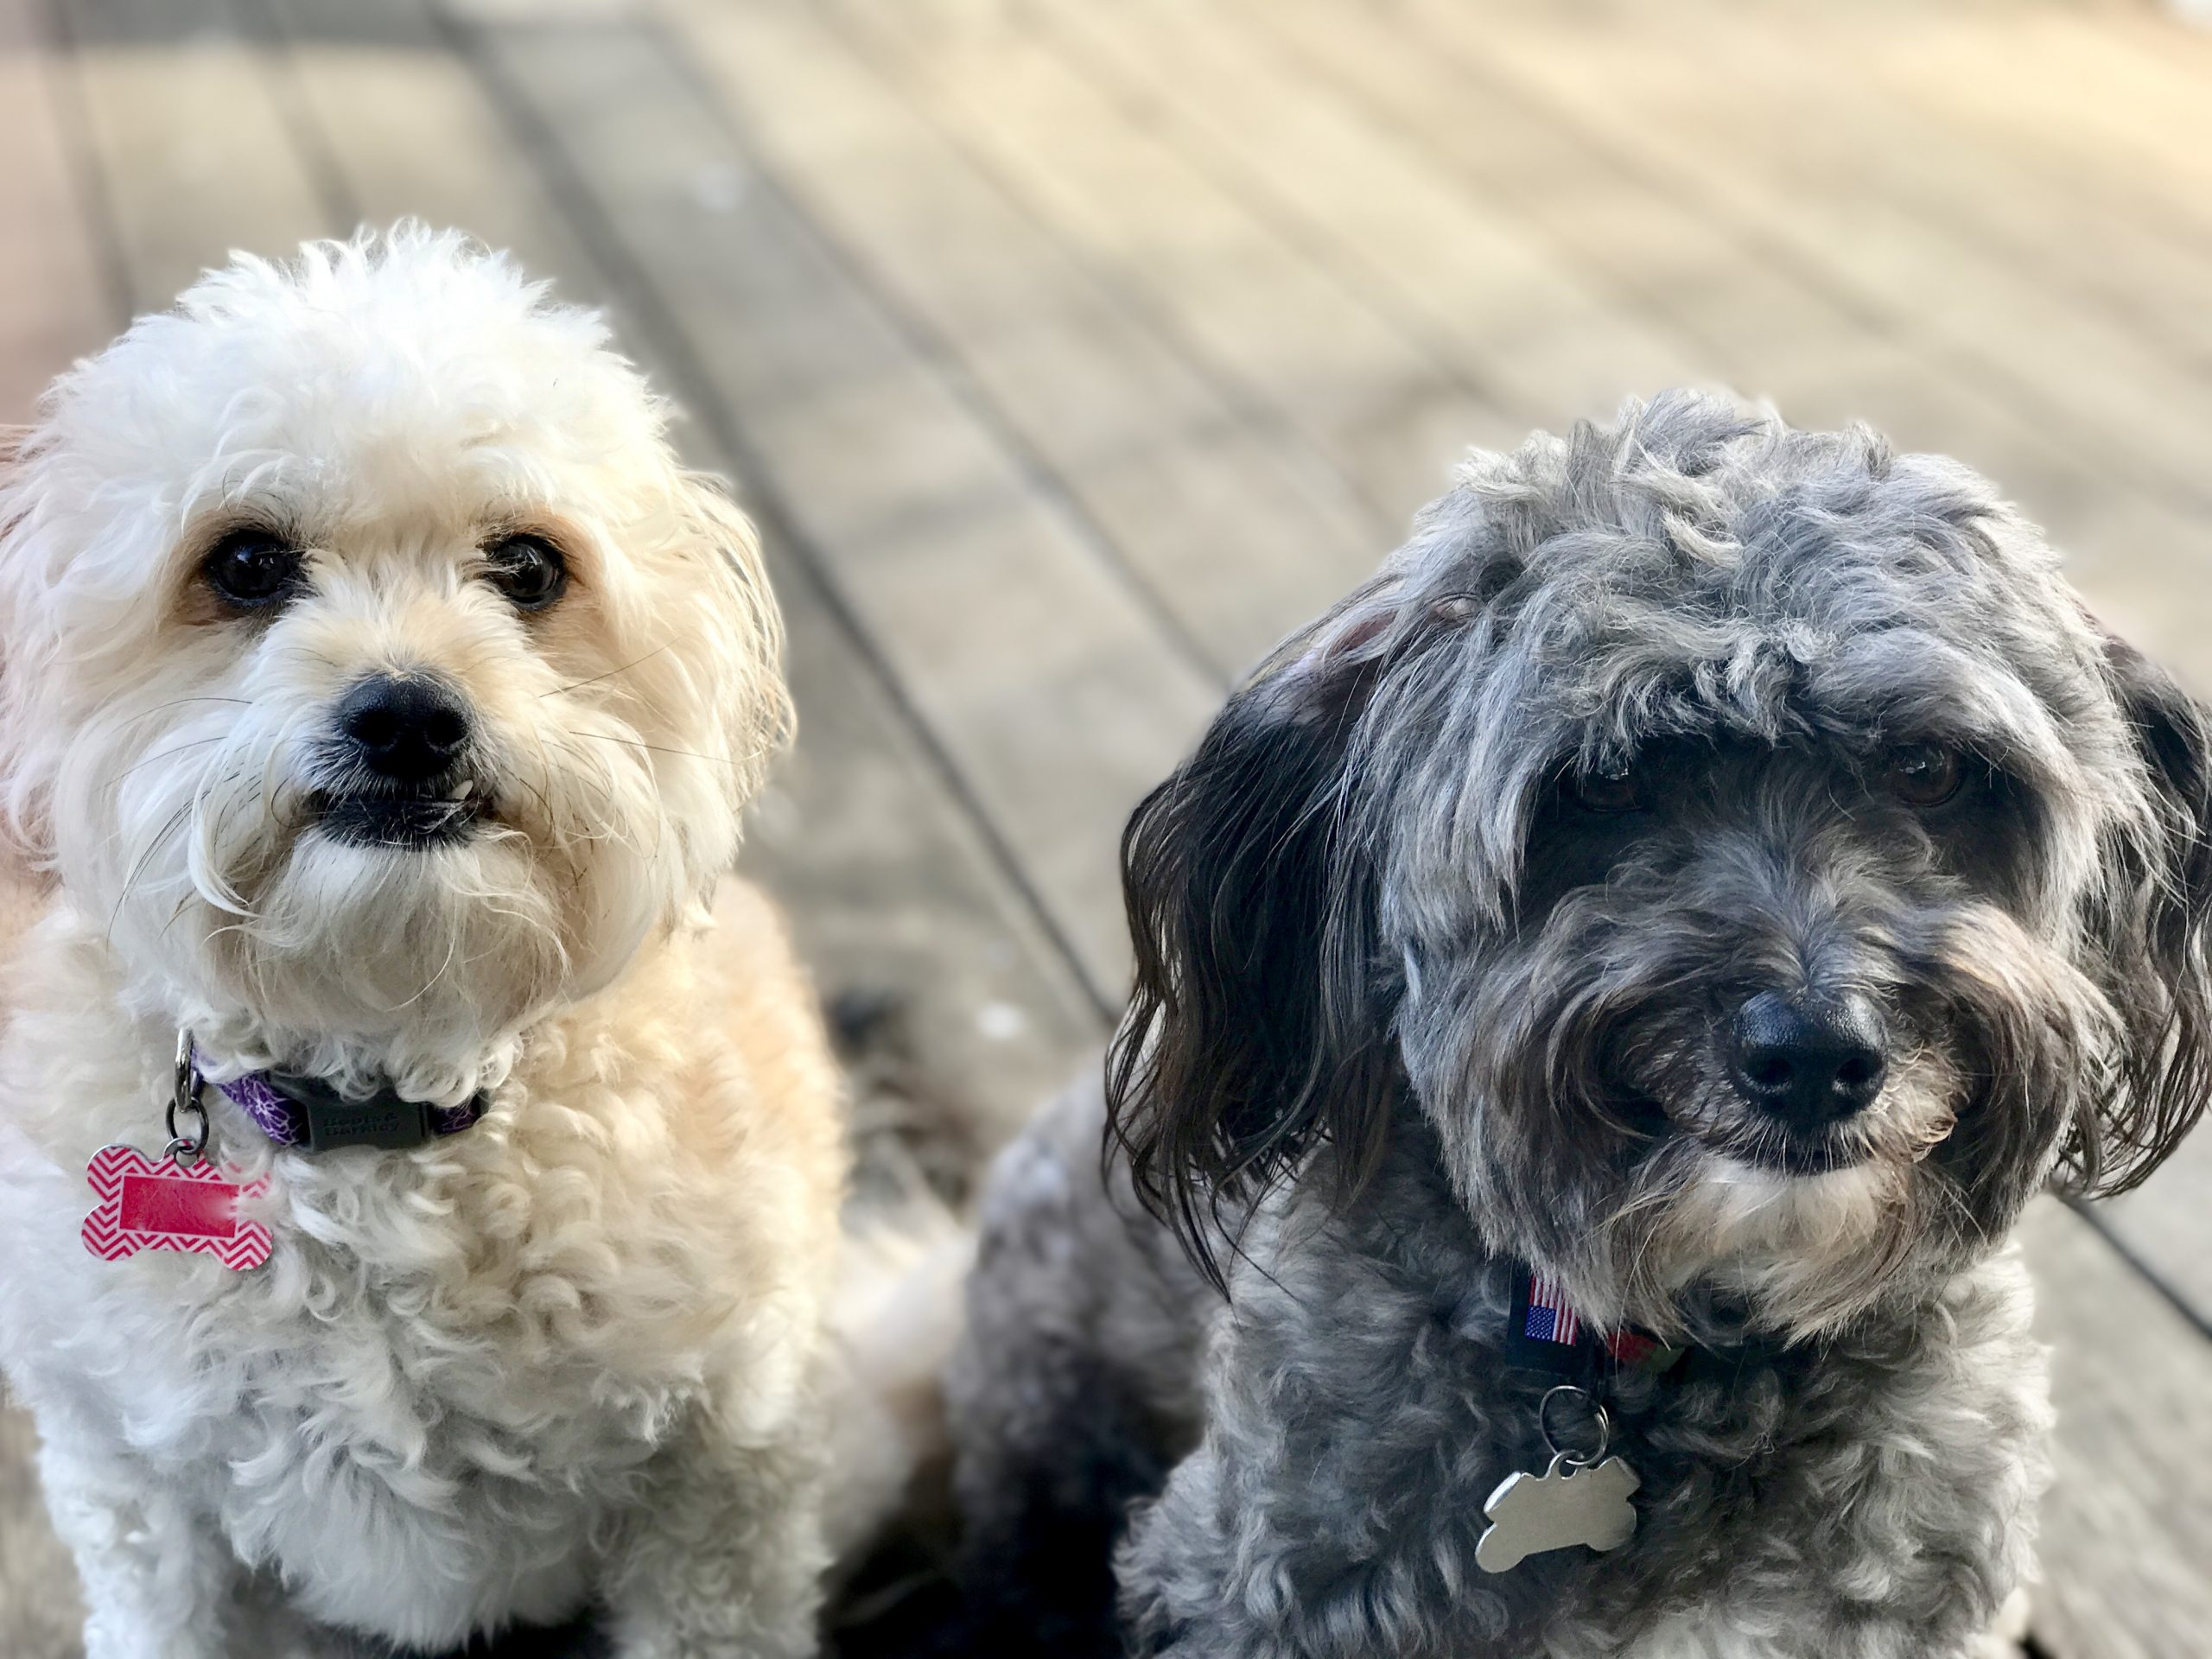 two rescue dogs look directly at camera while sitting on wood deck